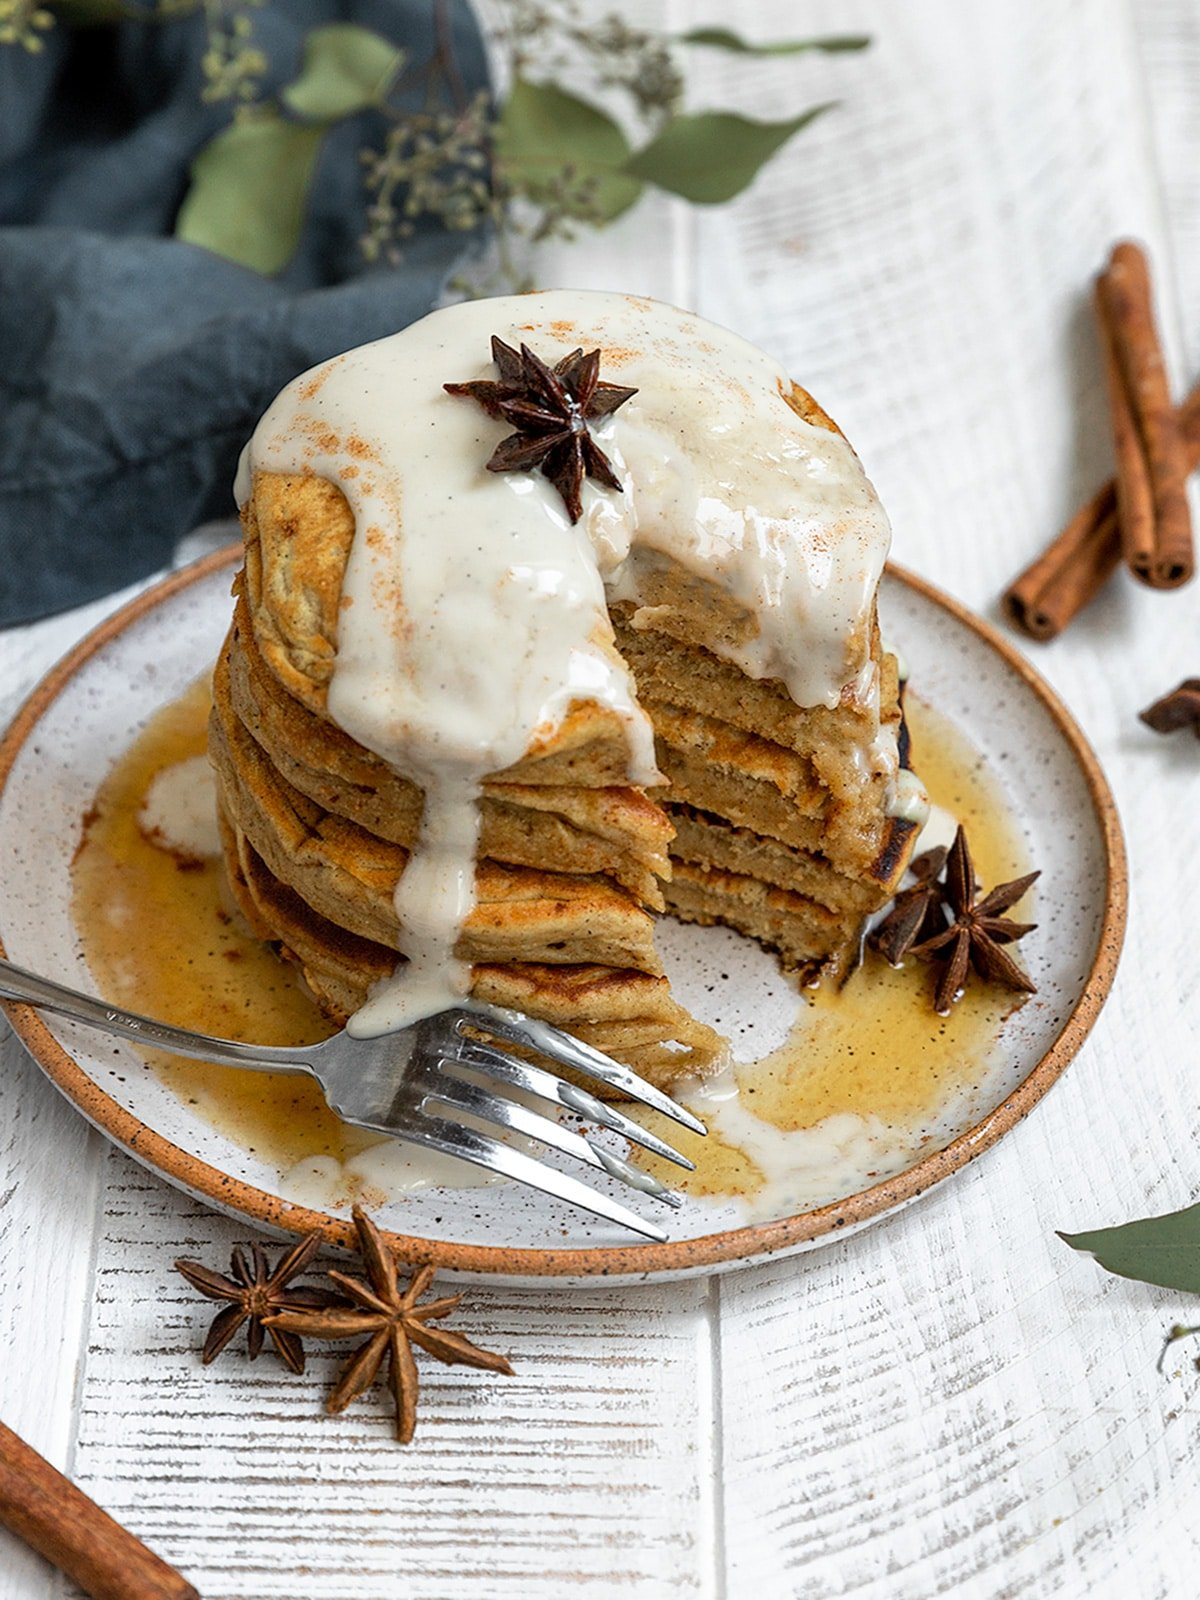 a stack of pancakes with a large slice taken out and a fork